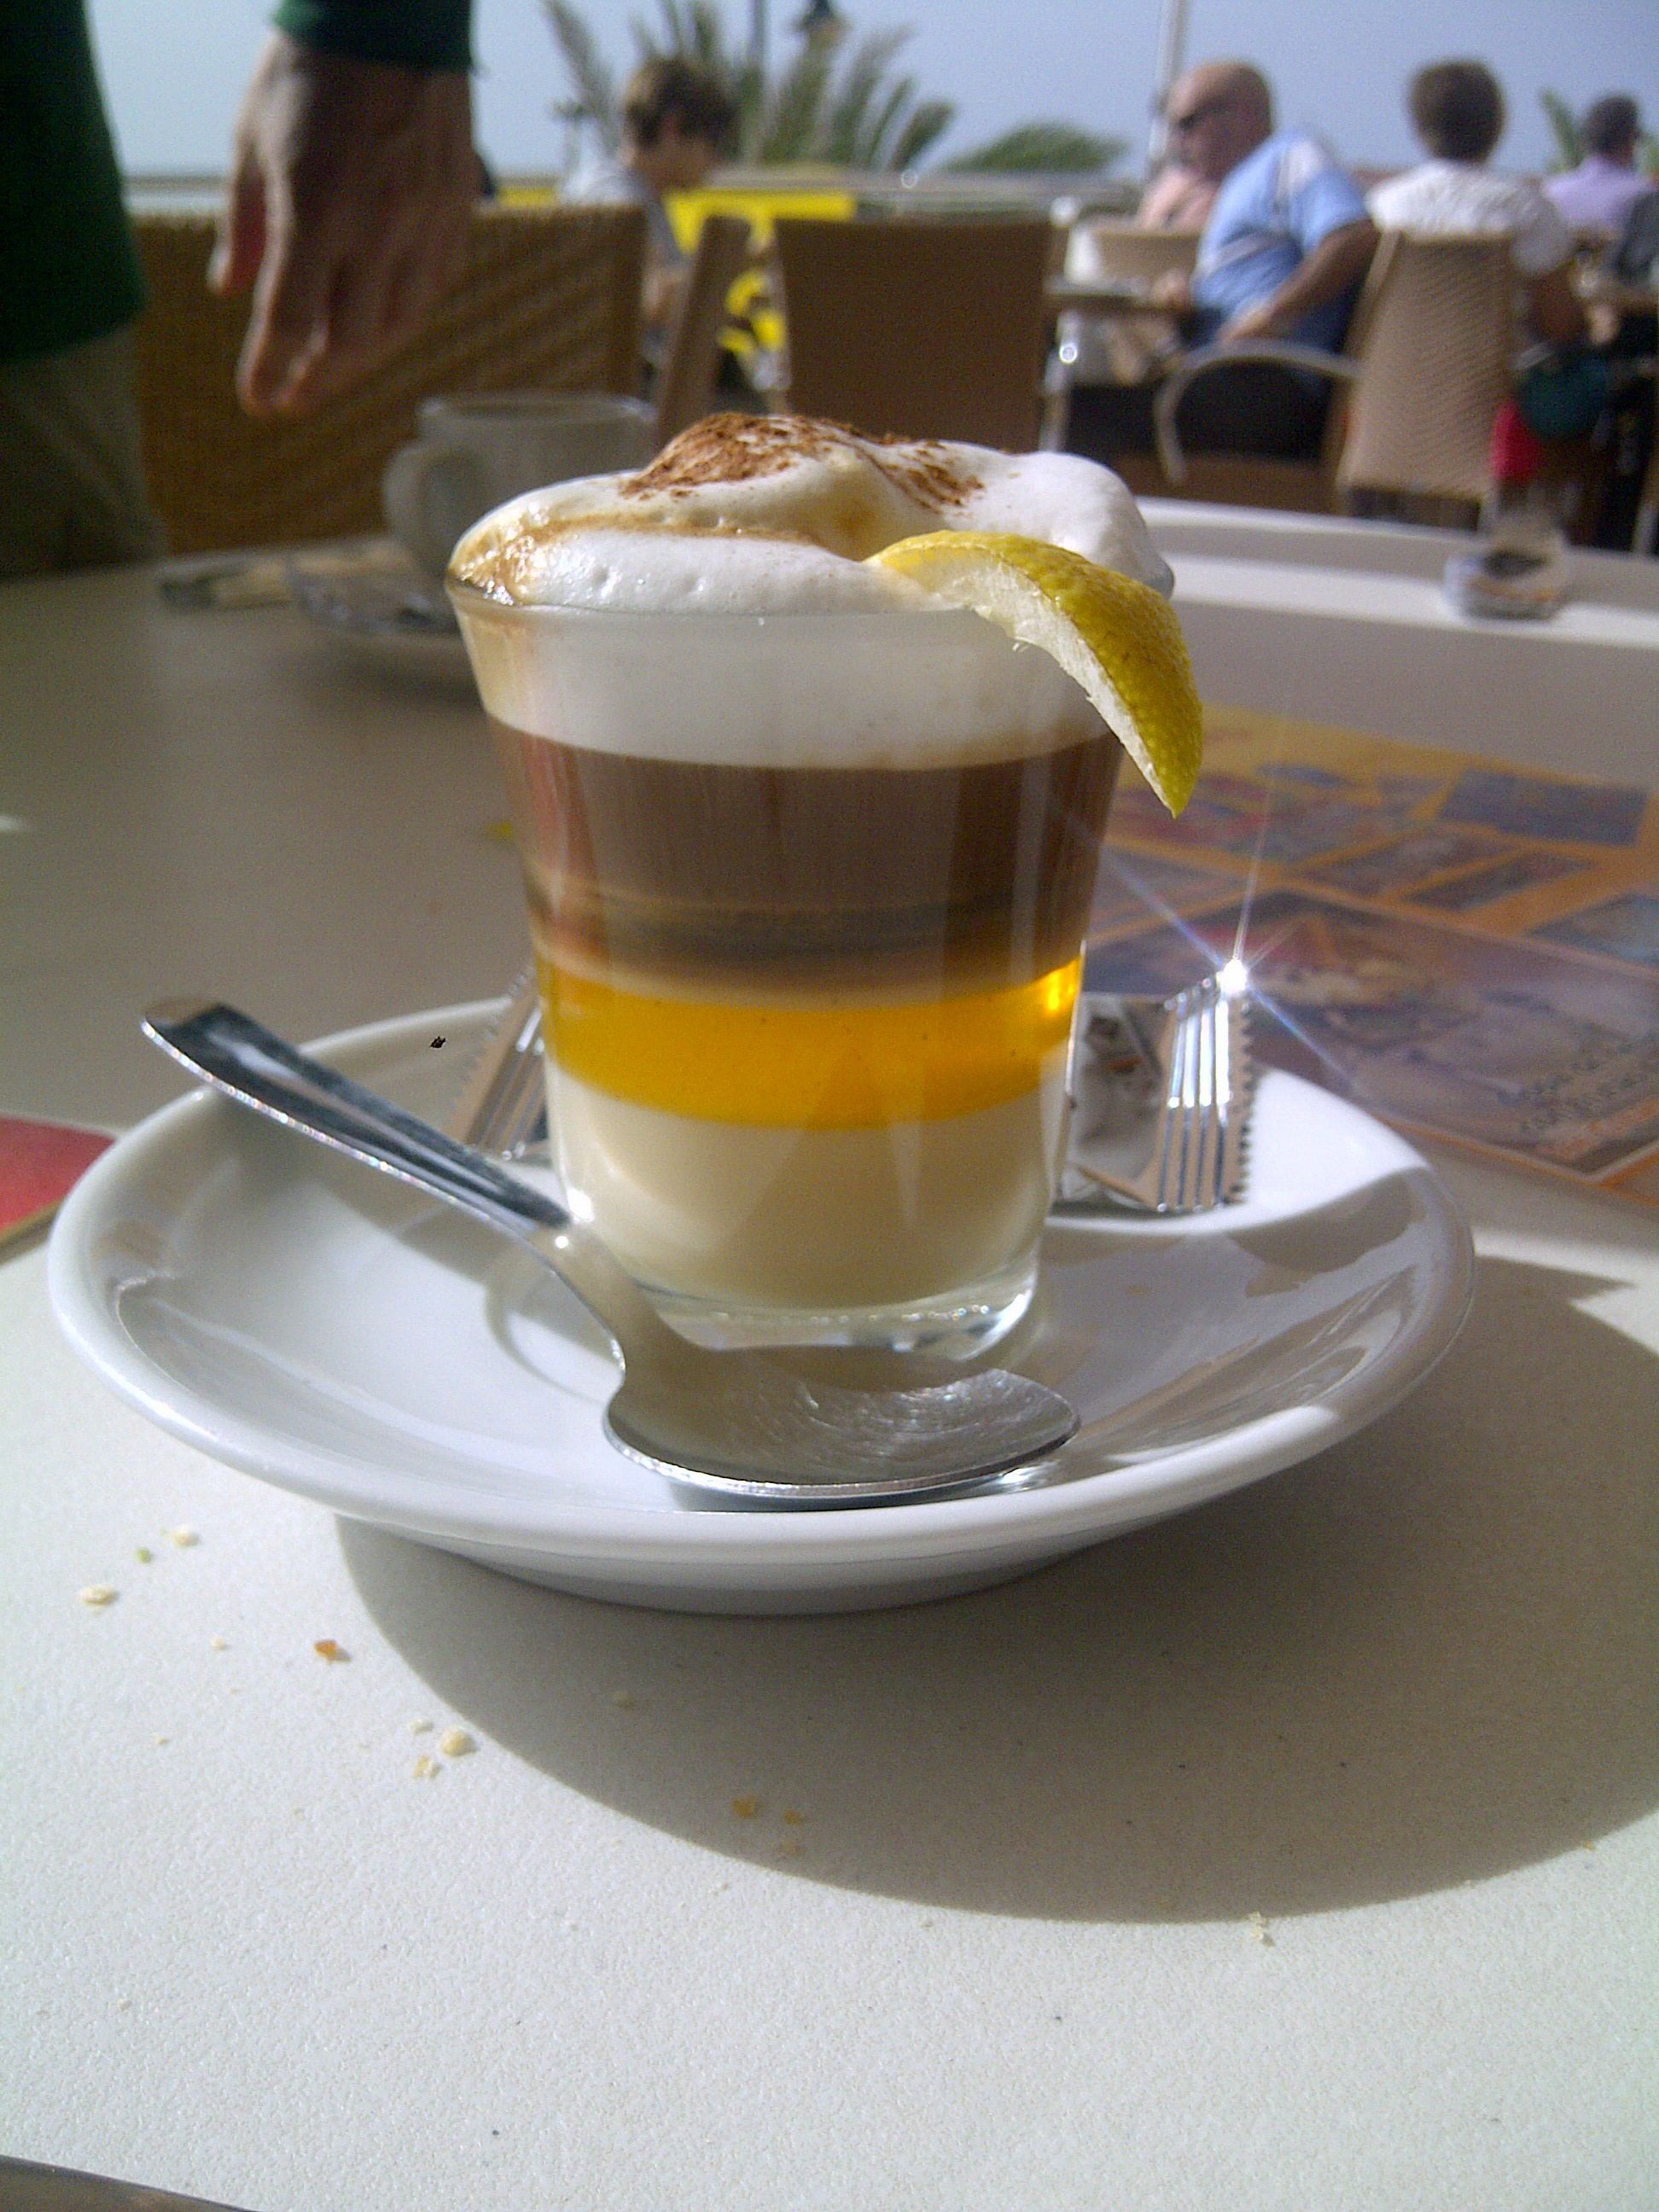 barraquito canario, one of the best coffee in the world